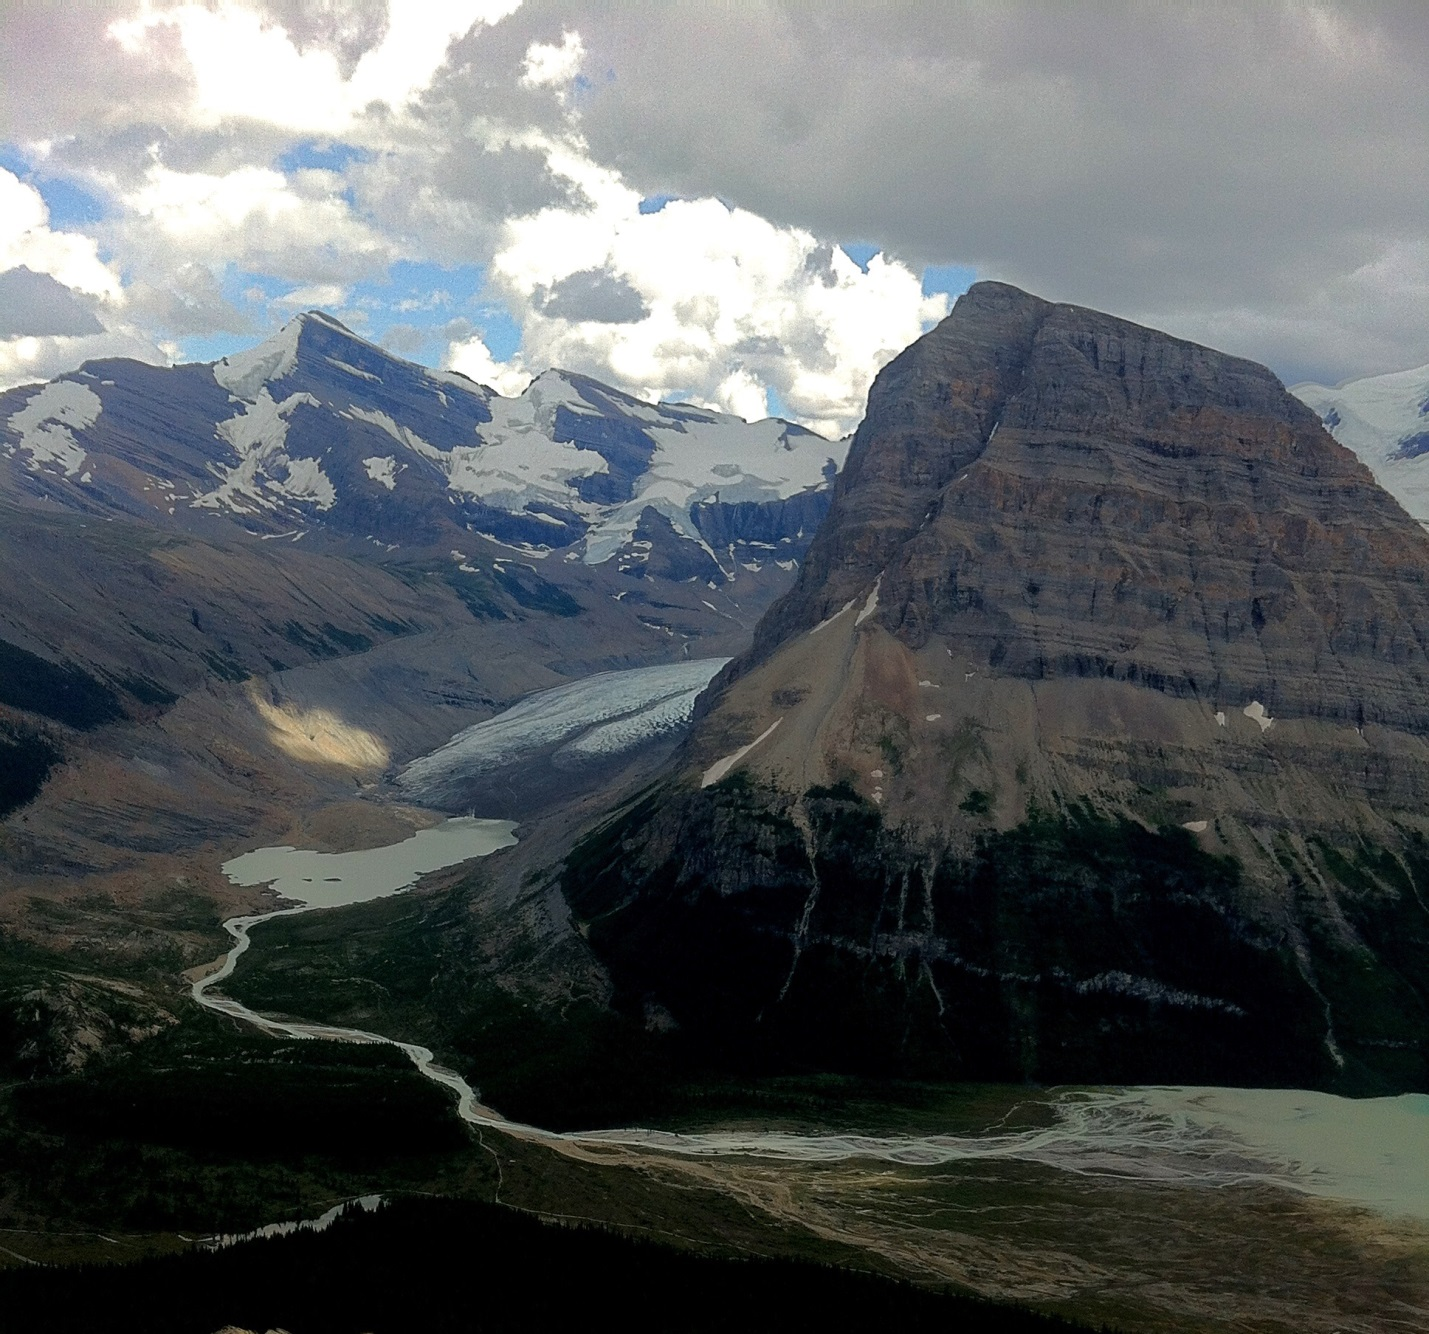 Rearguard Mountain and Robson Glacier in the Rocky Mountains of British Columbia [SE]